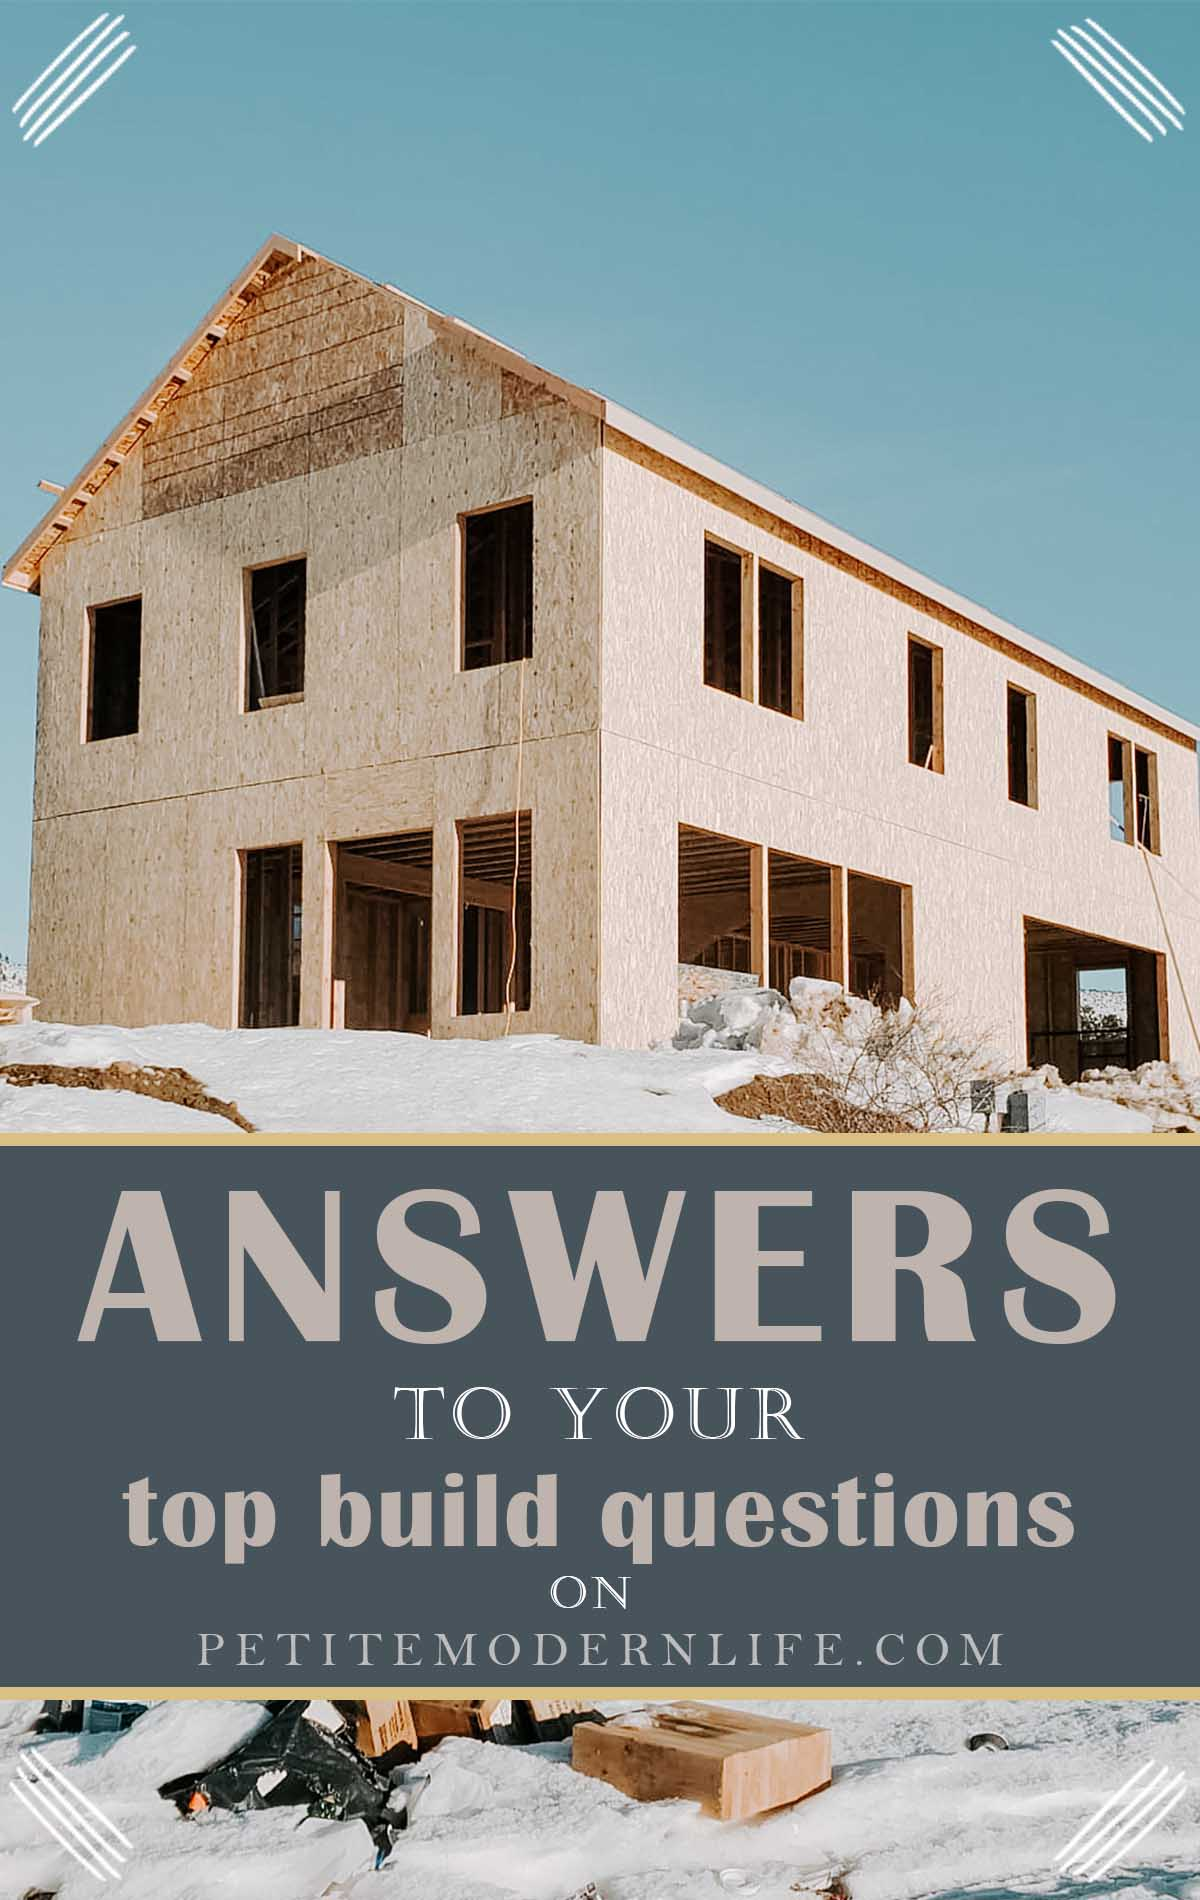 How much does it cost to build? What do you have to do first? What should I ask the builder? Answers on Petite Modern Life!